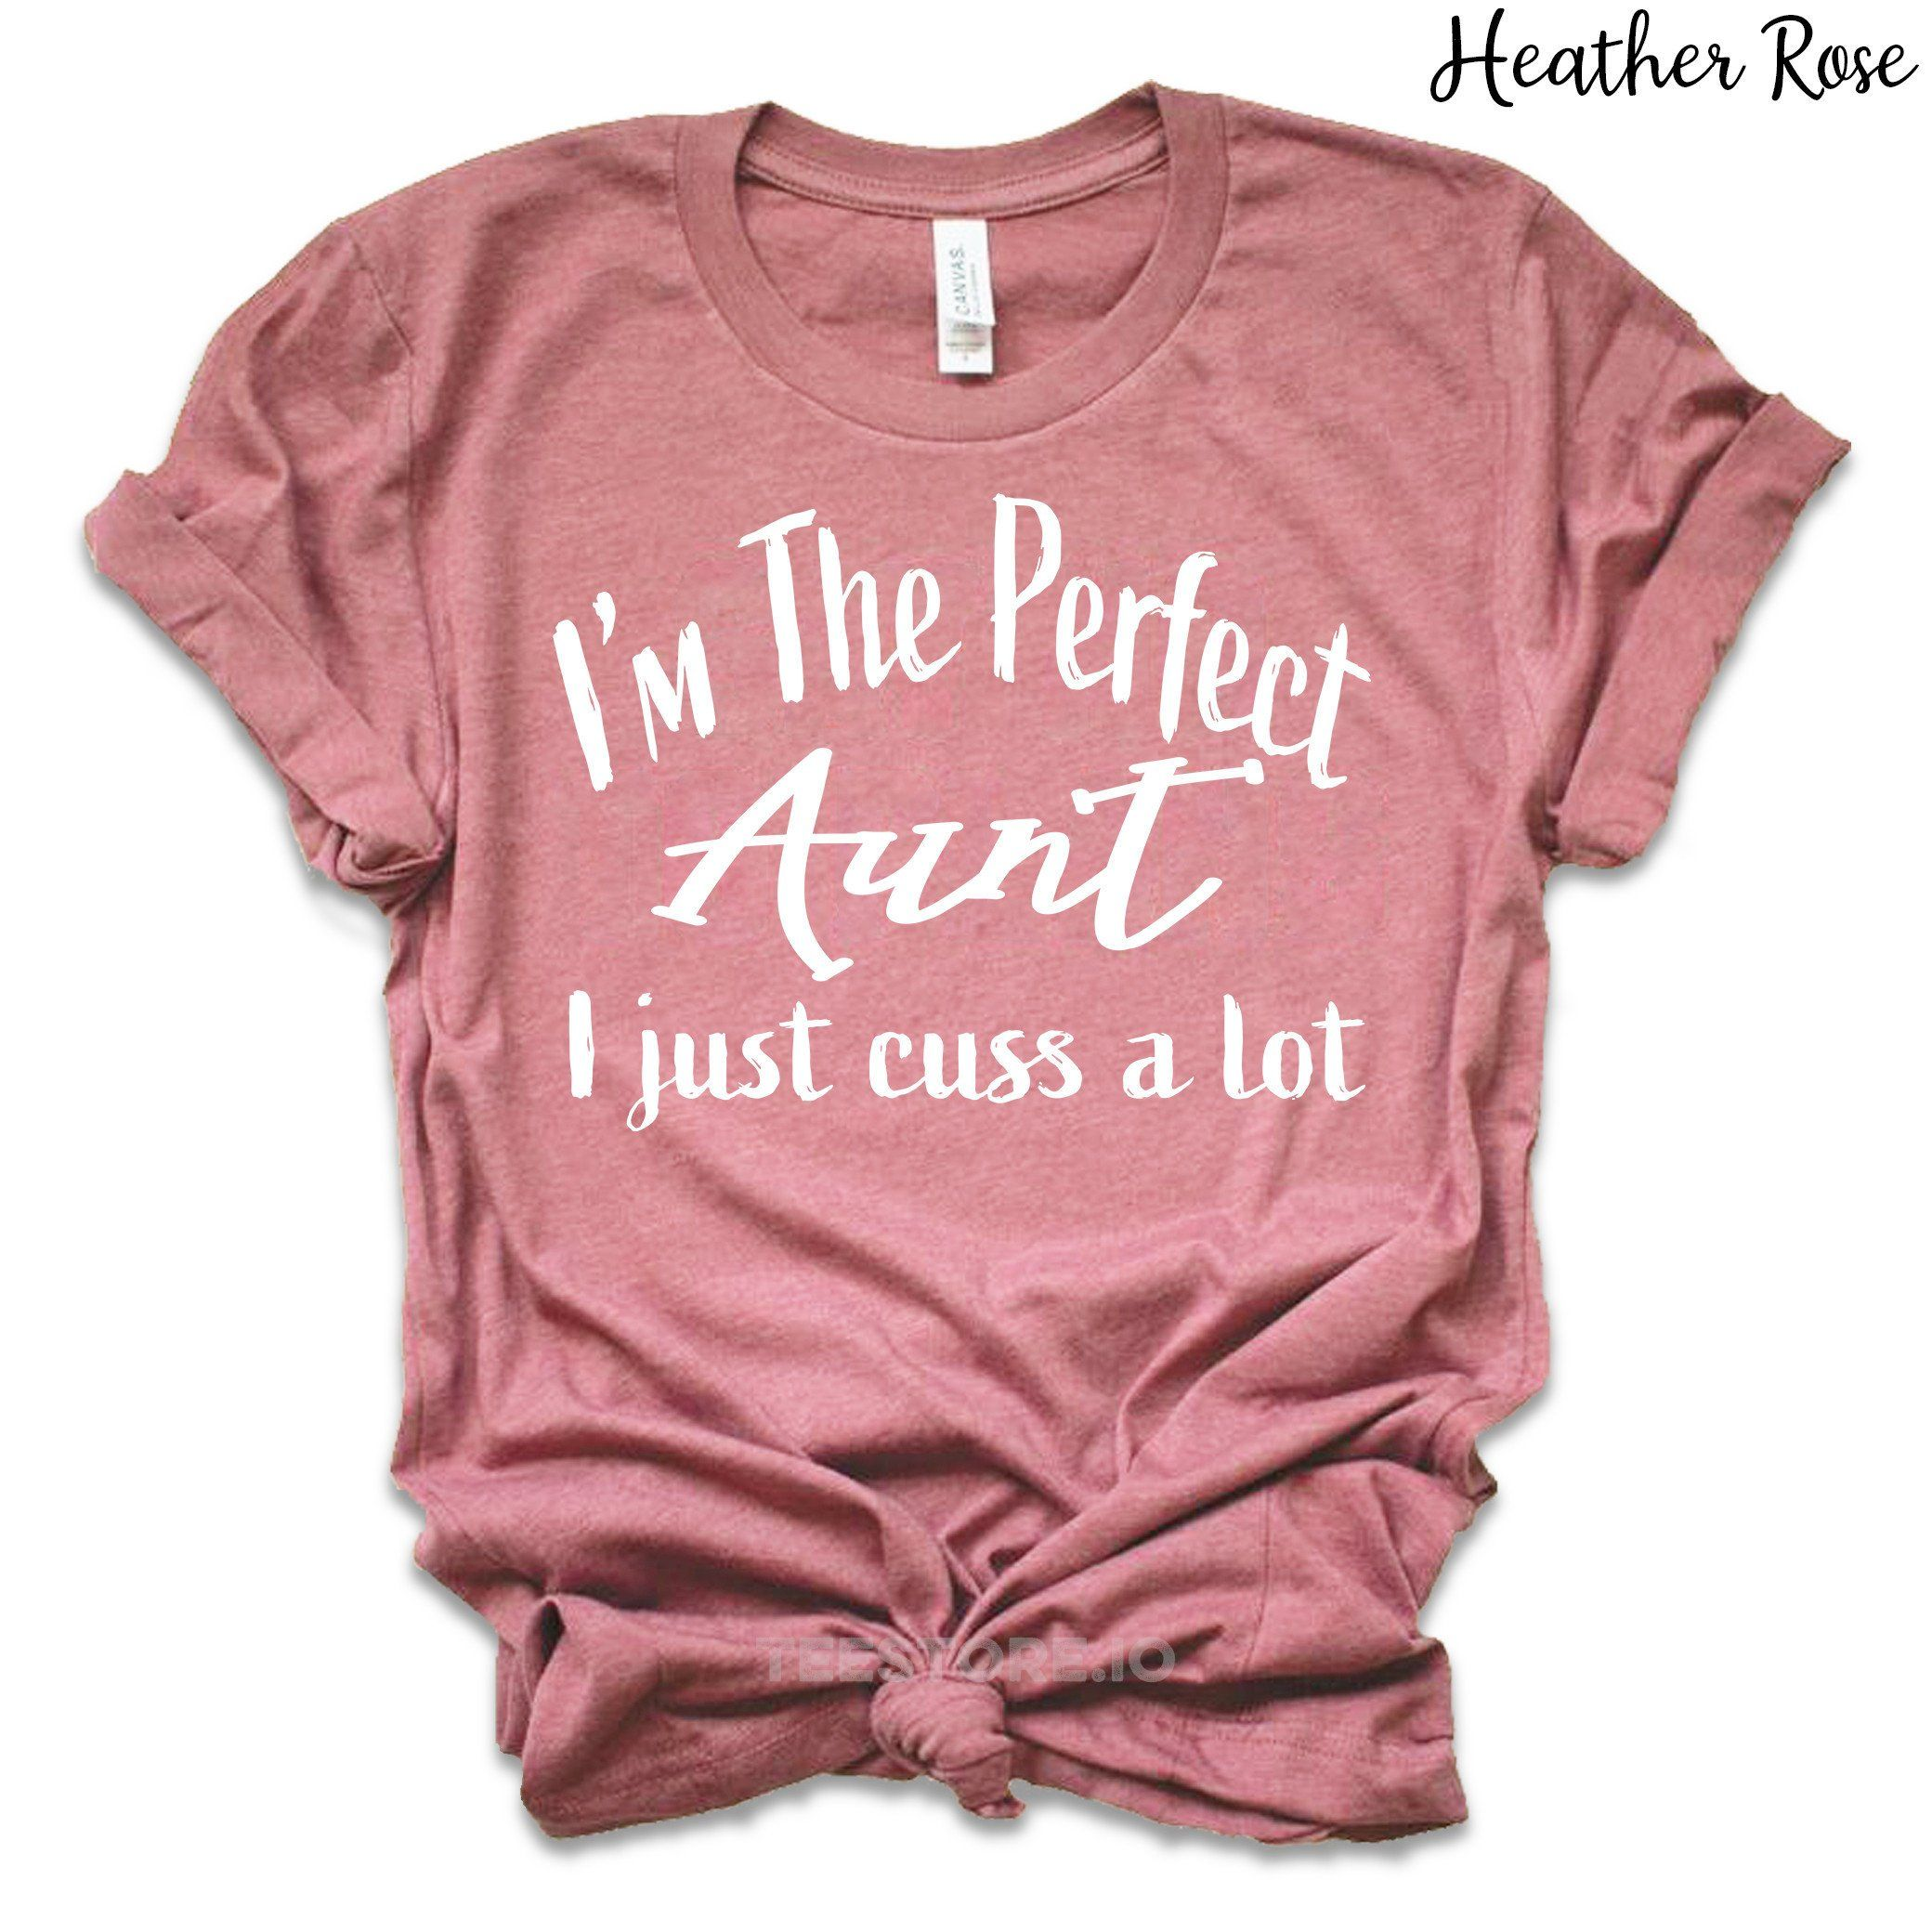 Aunt Shirts - Im The Perfect Aunt I Just Cuss A Lot - Aunt Gifts - Auntie T Shirts - Gifts For Aunts - Aunt To Be Shirts